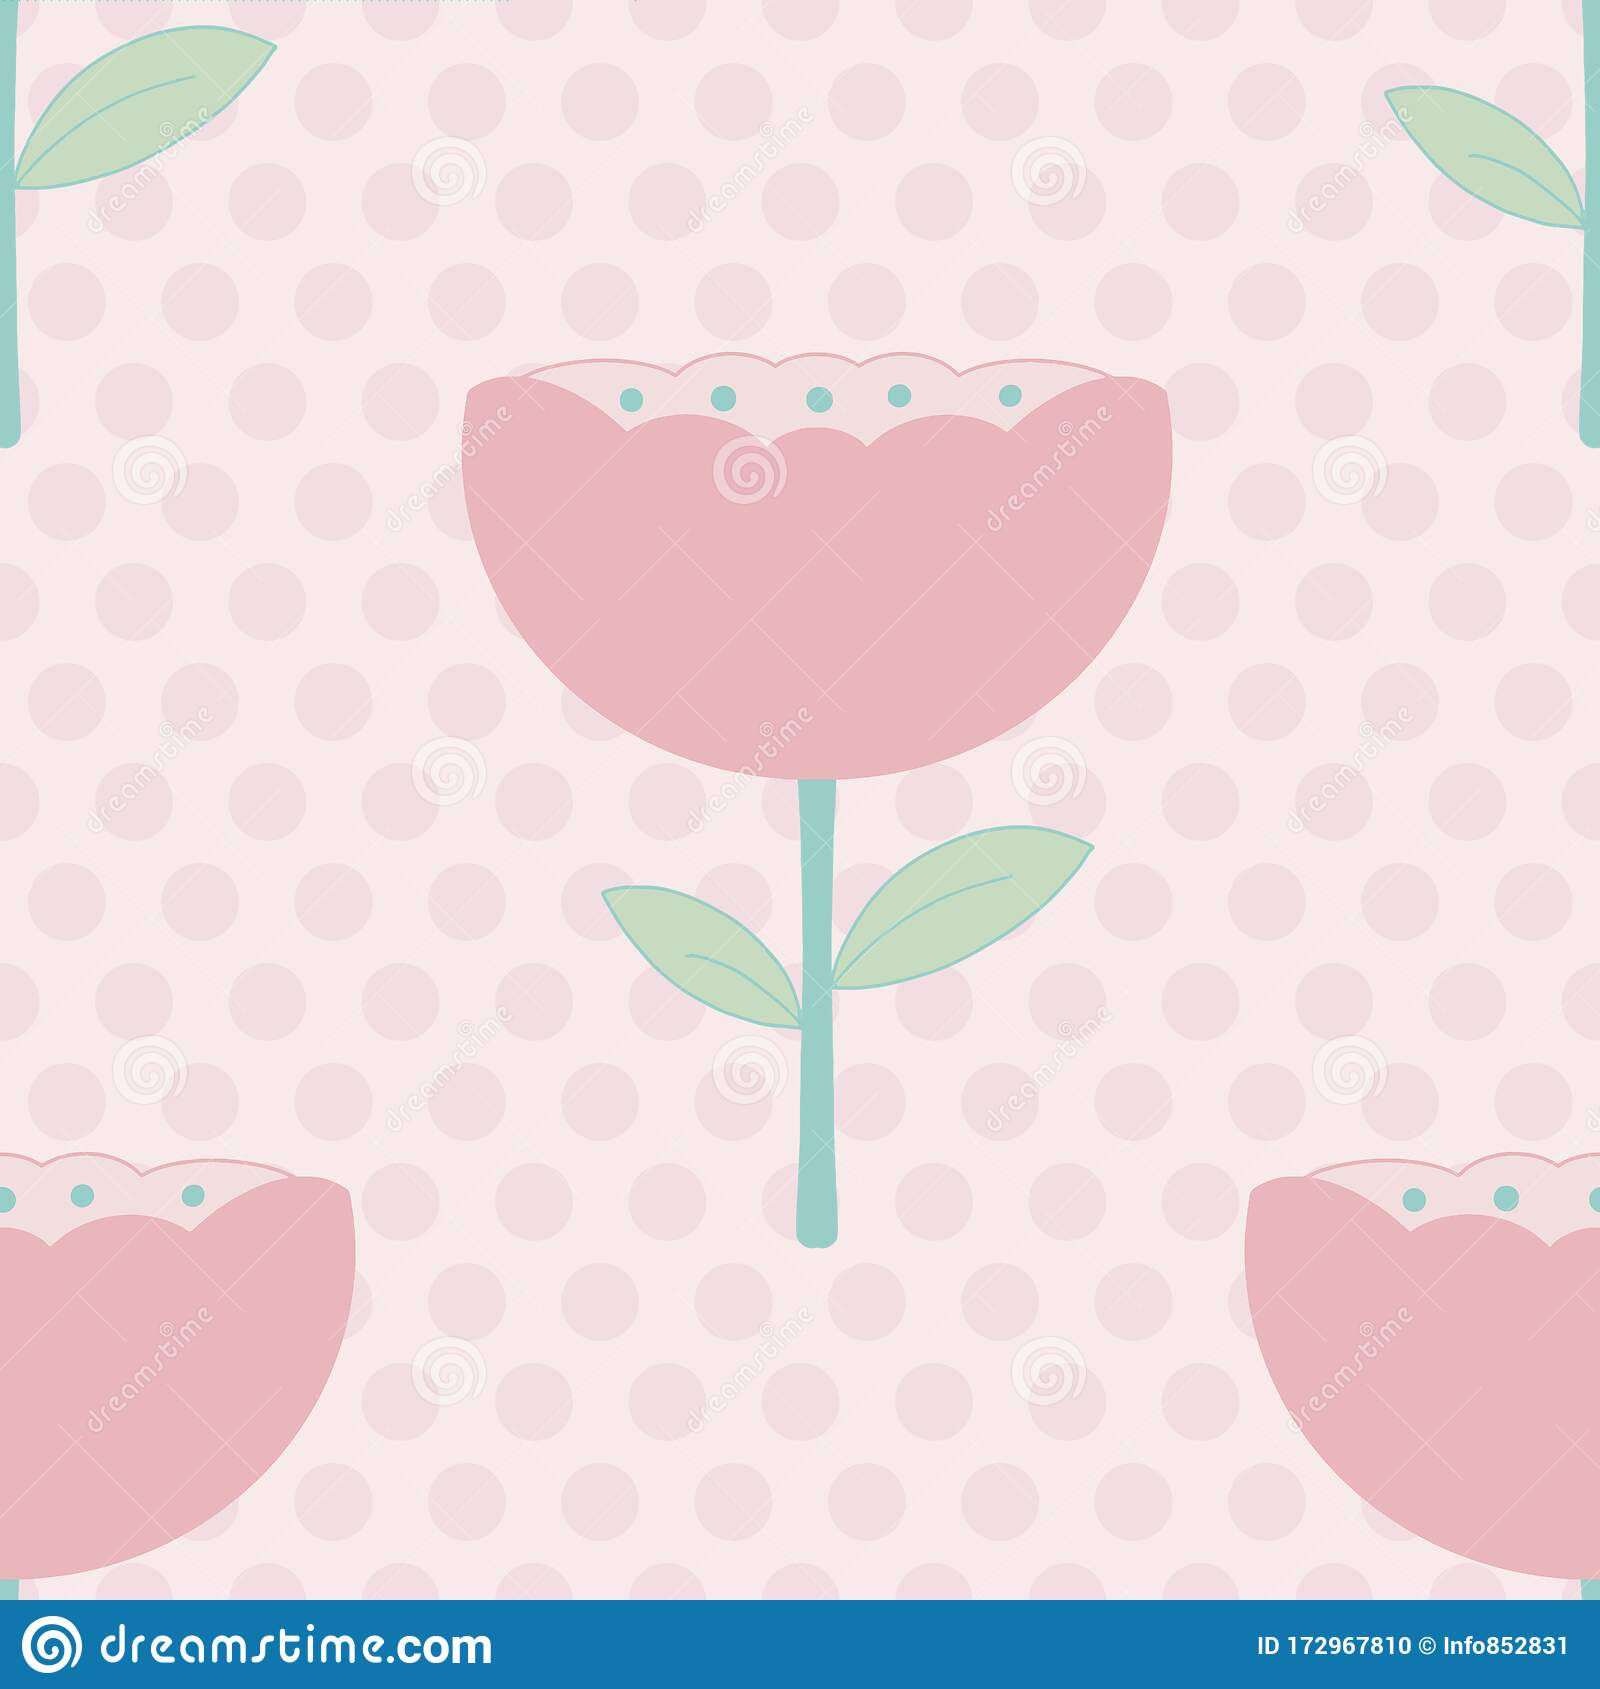 Modern Pastel Floral Seamless Vector Pattern In Soft Colors Stock Vector Illustration Of Cheerful Blossom 172967810